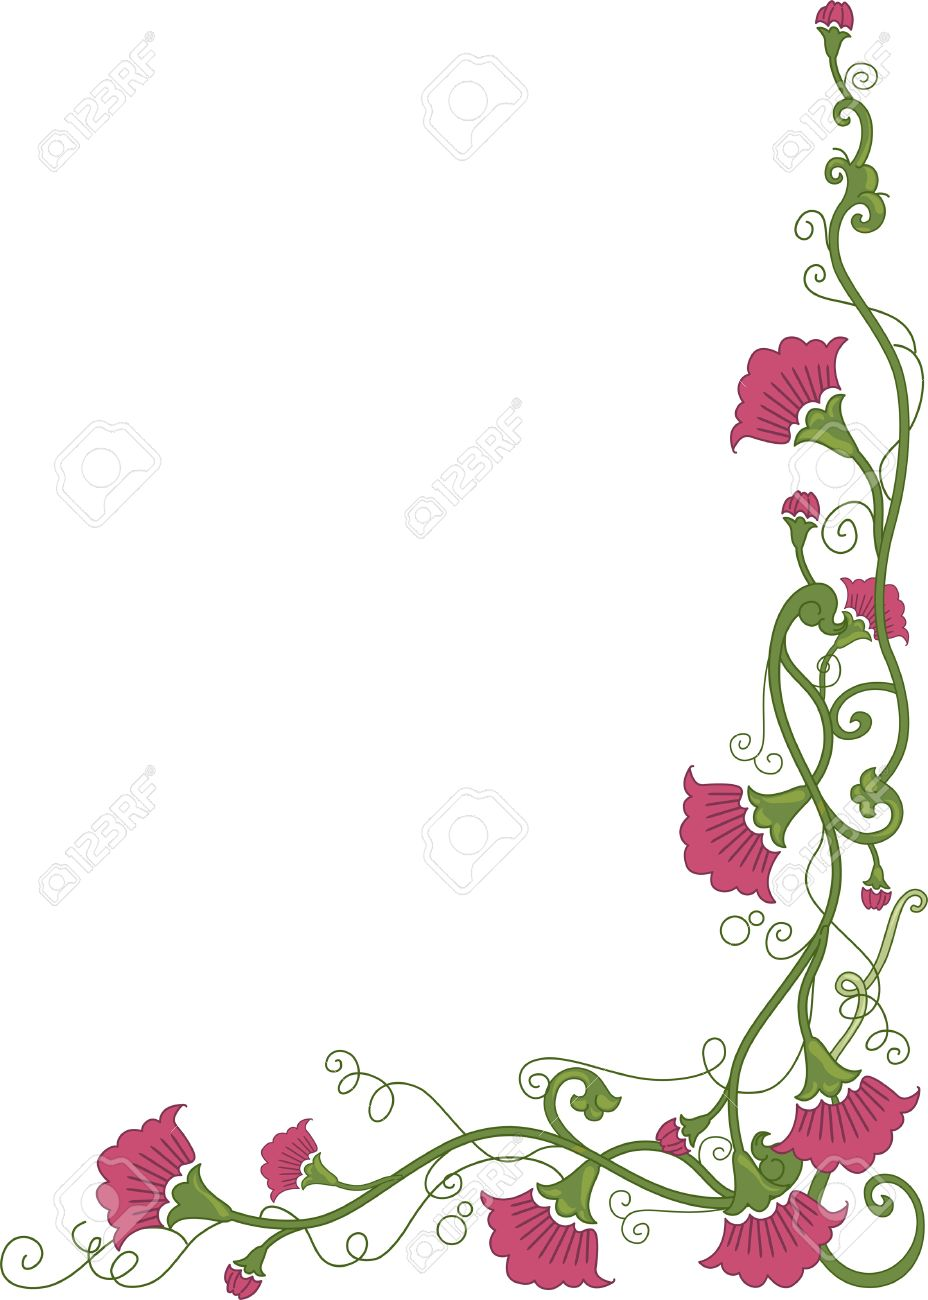 Corner Border Illustration Featuring Flowers Wrapped Around in..